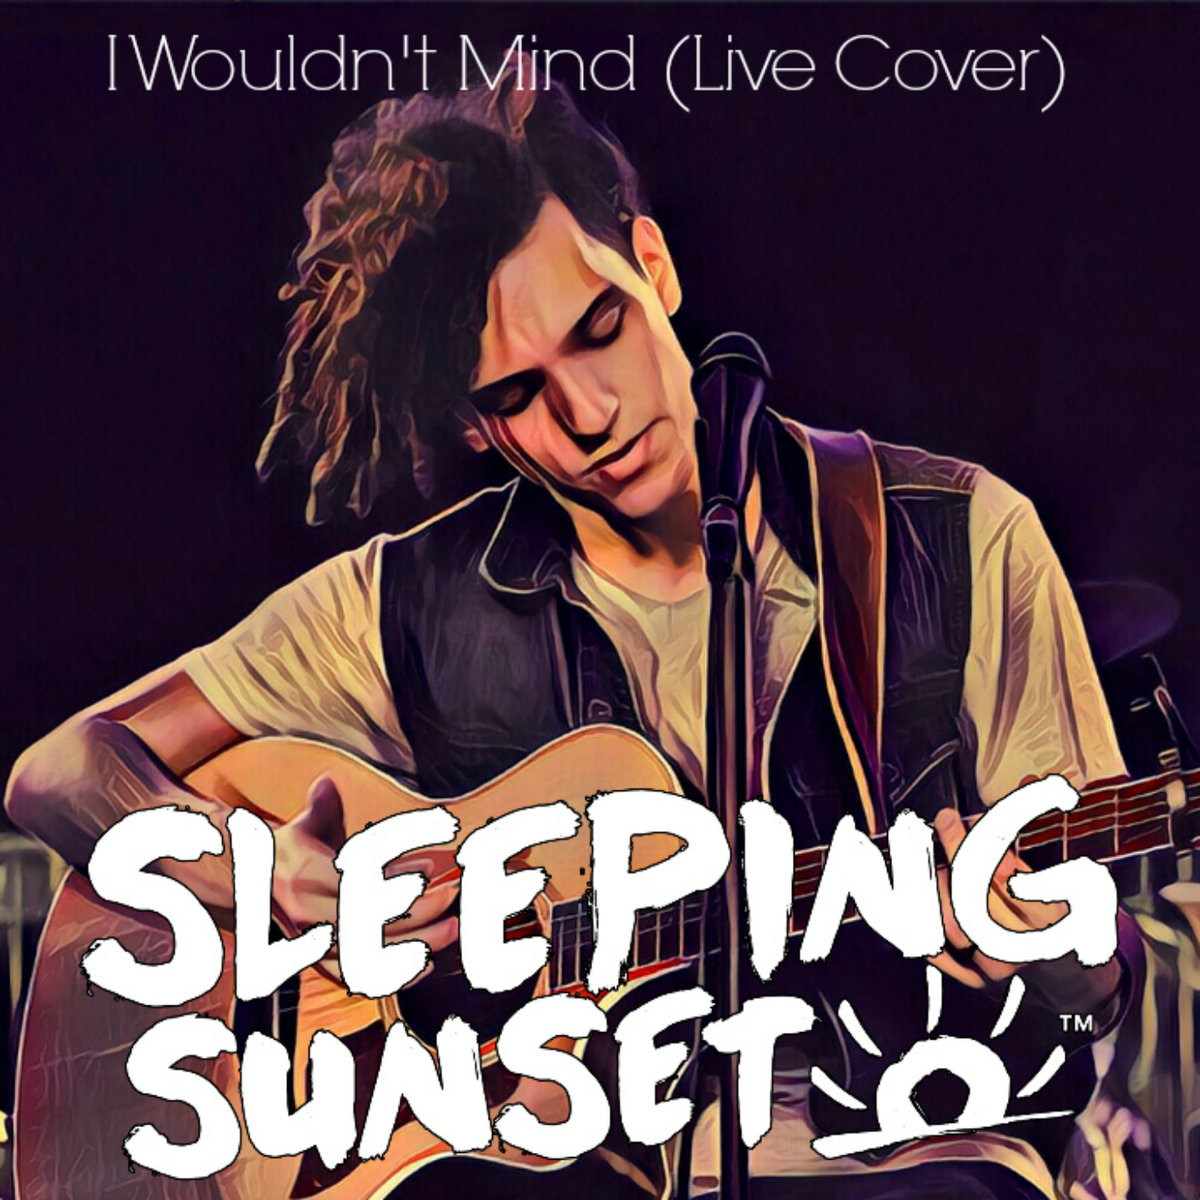 I Wouldn't Mind (Live Cover) by Sleeping Sunset